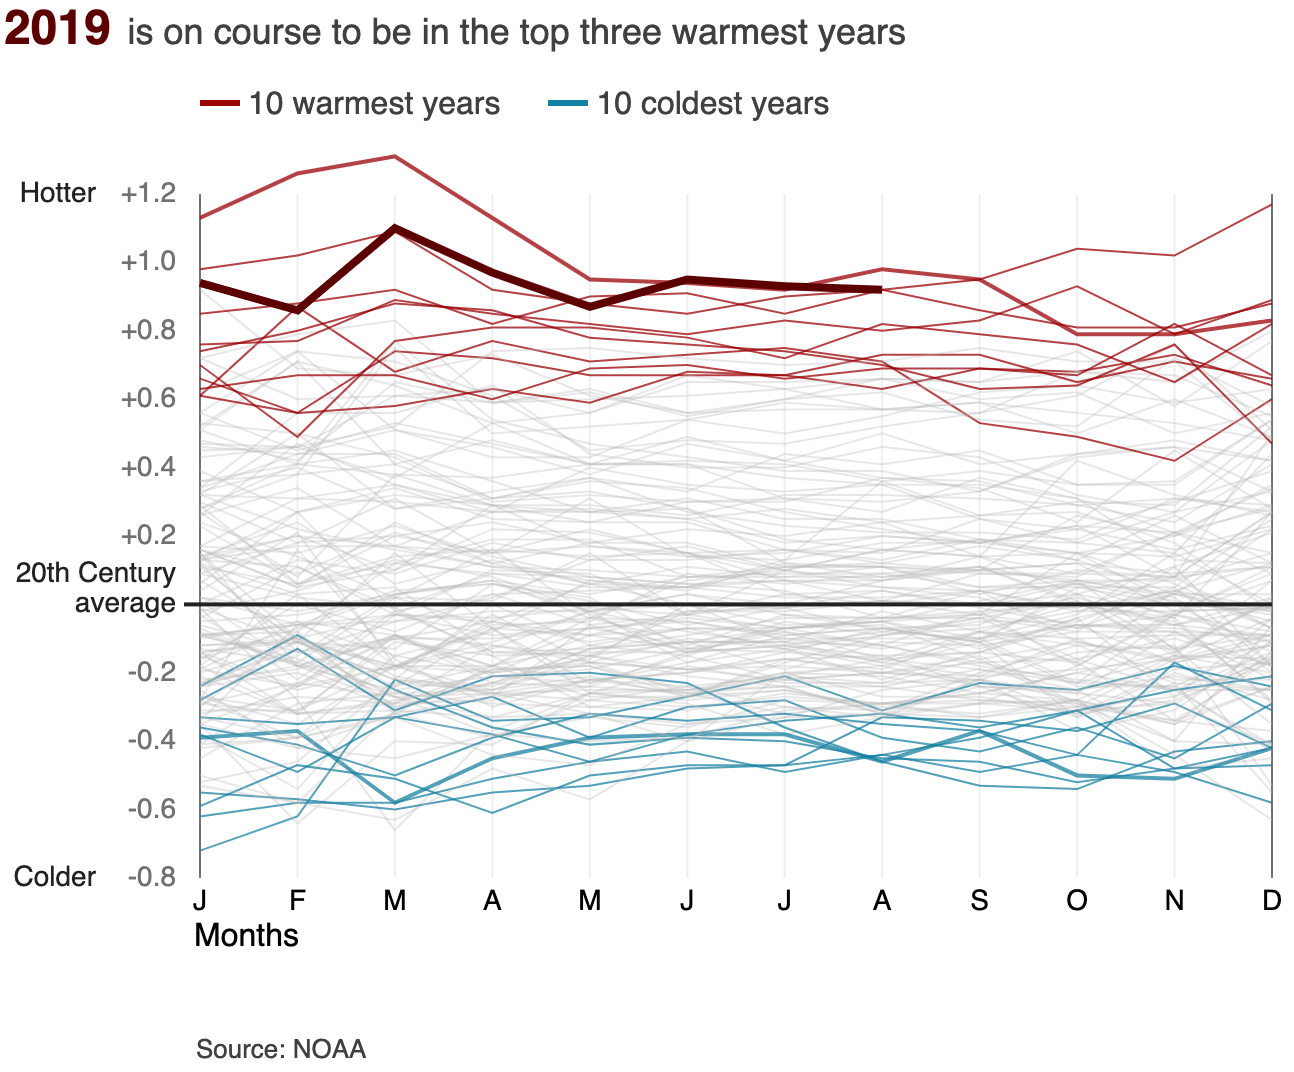 Animated chart showing that most of the coldest 10 years compared to the 20th century average were in the early 1900s while the warmest years have all been since 2000, with 2018 on course to be the fourth warmest year on record